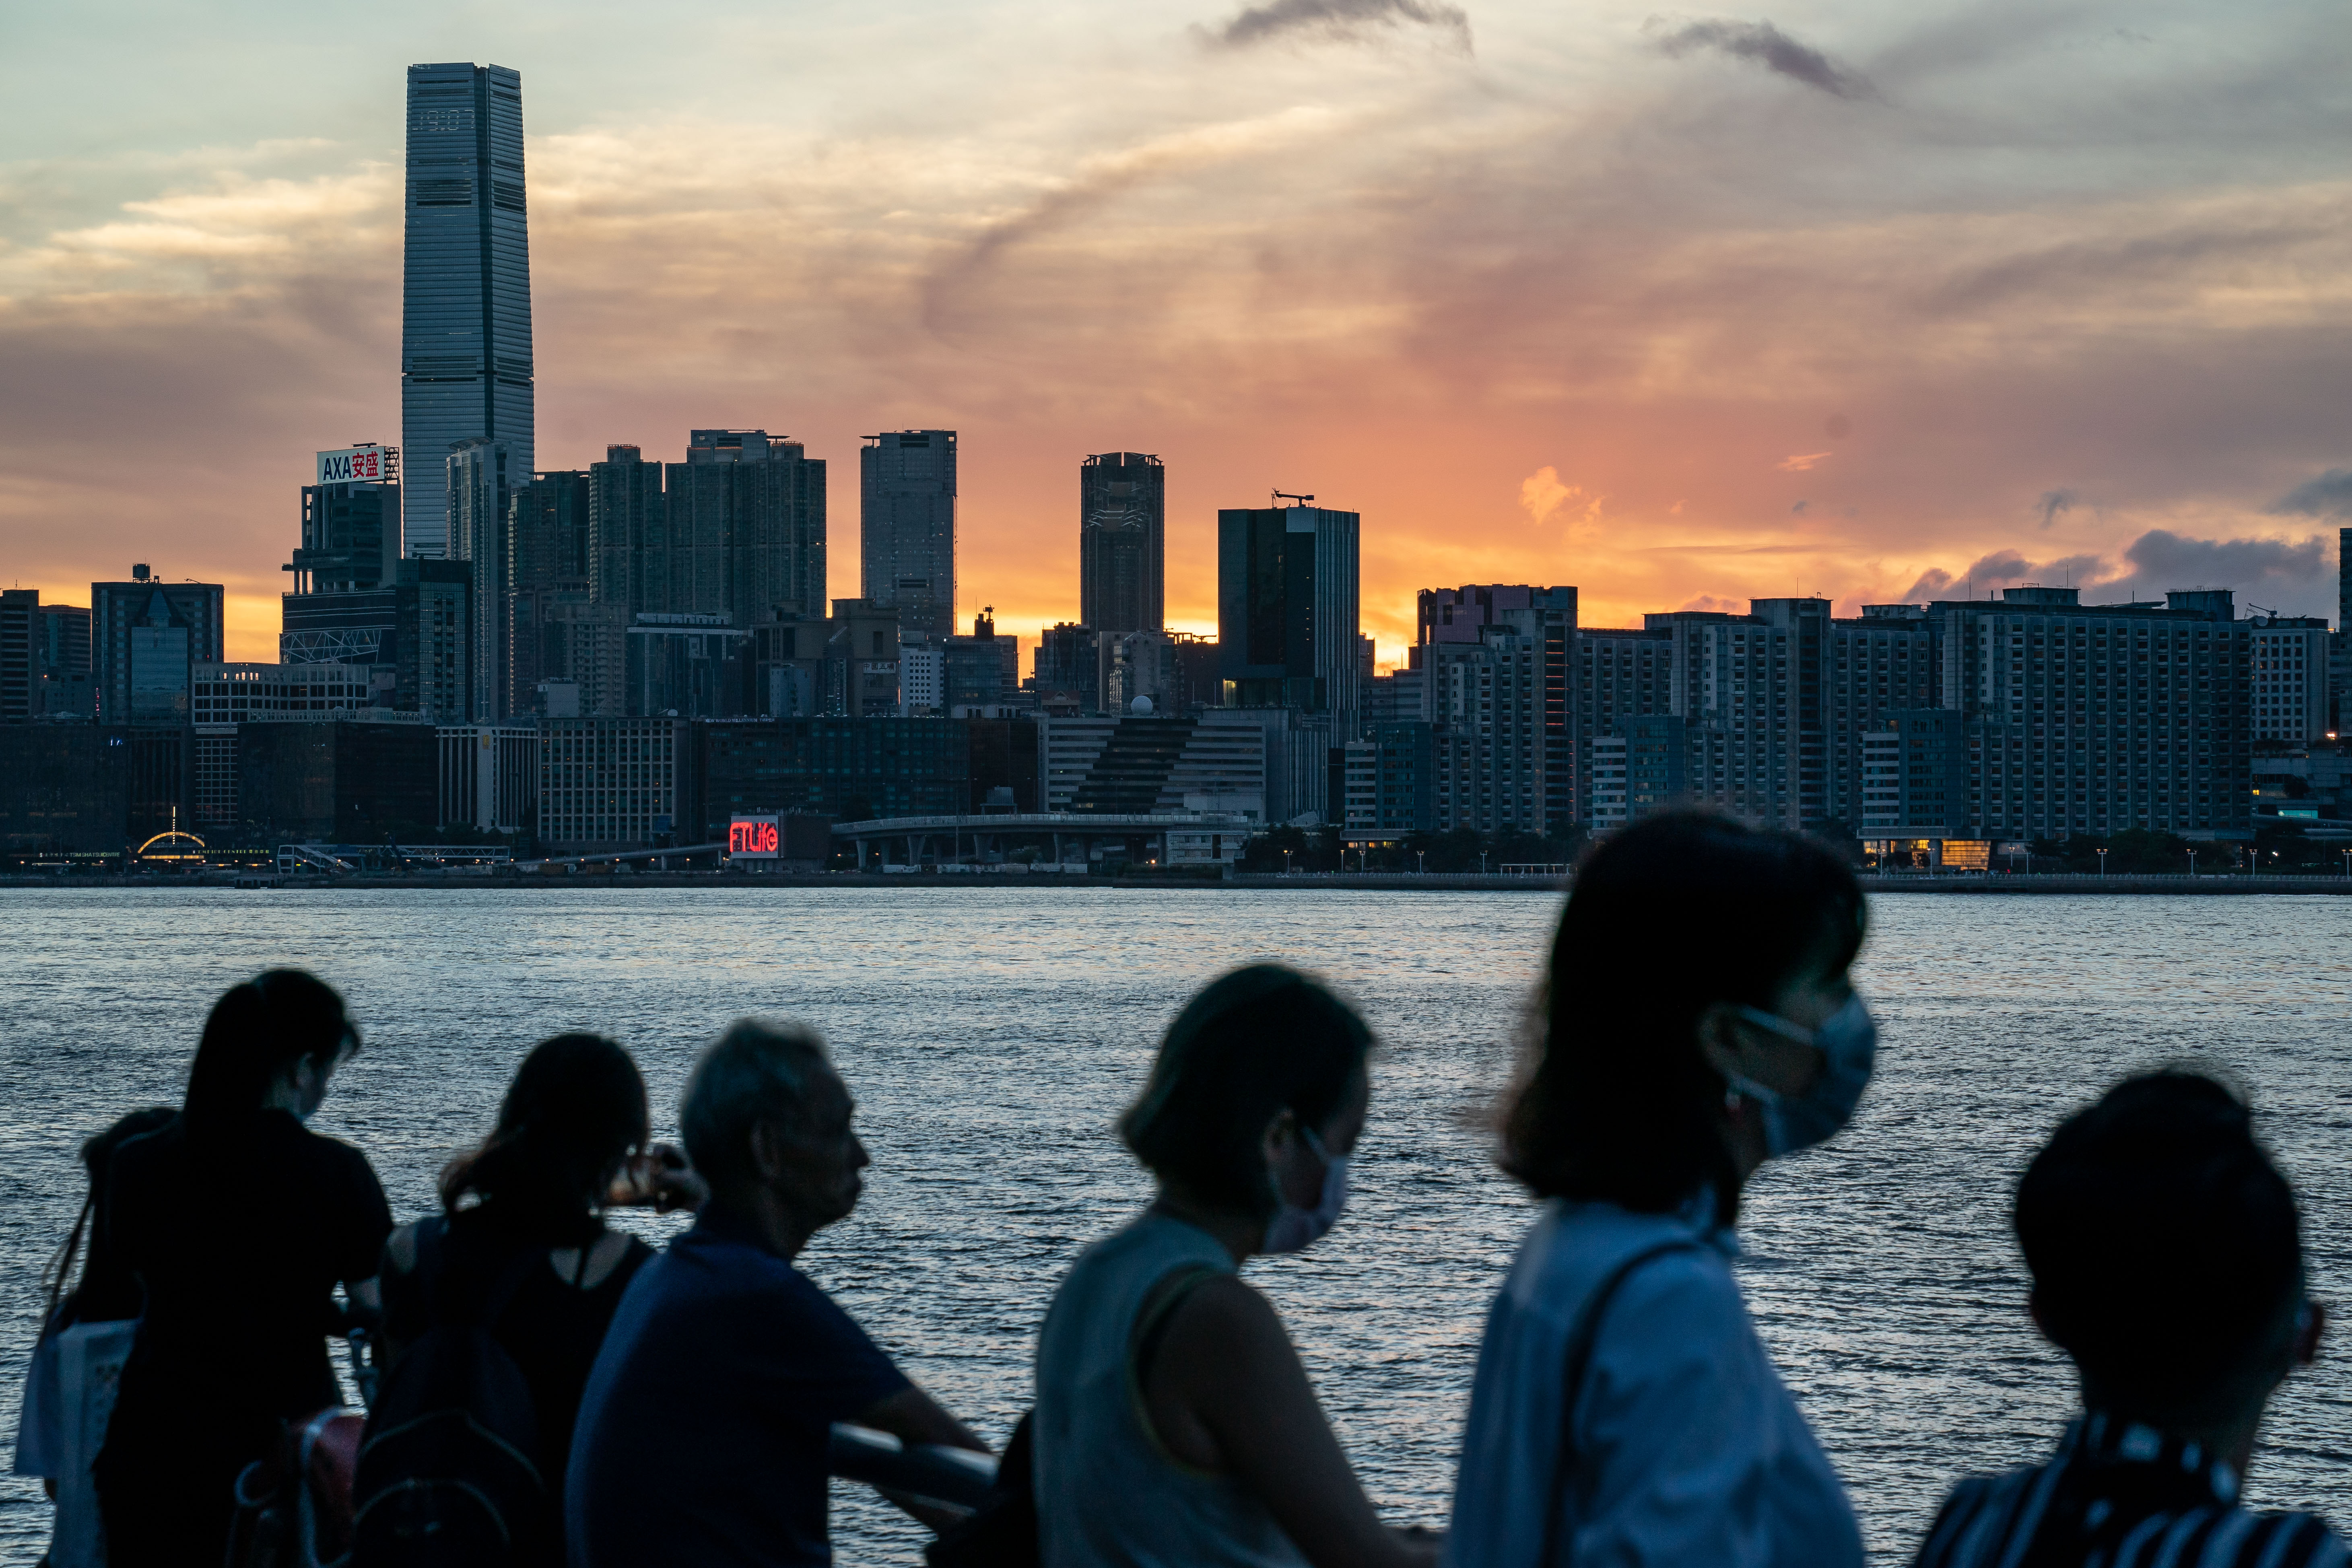 People stand by a harbour in Hong Kong during sunset on July 16.